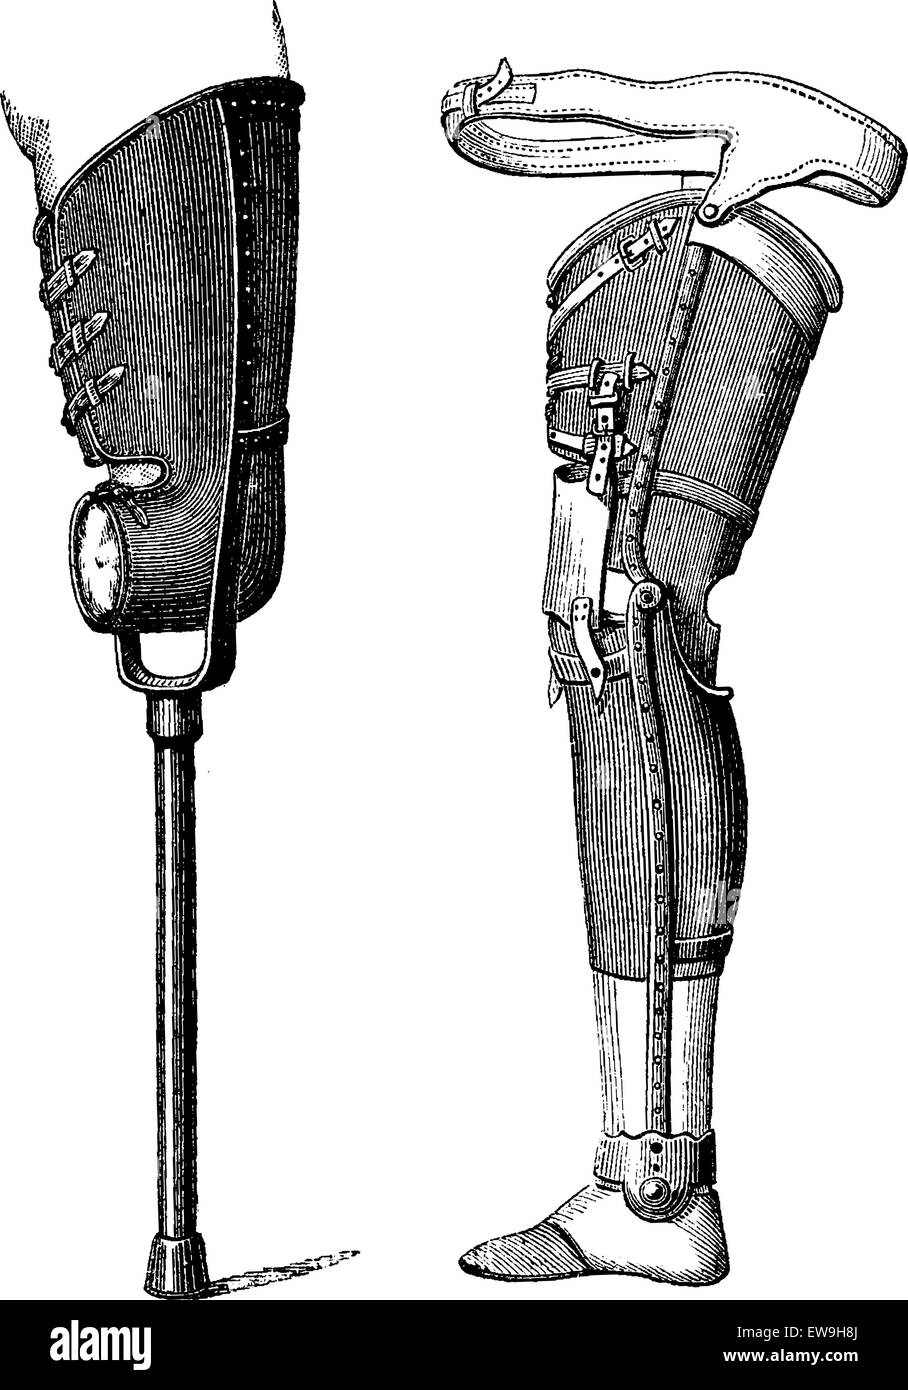 Artificial Legs Non-Bendable at the Knee (left) and Bendable at the Knee (right), vintage engraved illustration. - Stock Vector